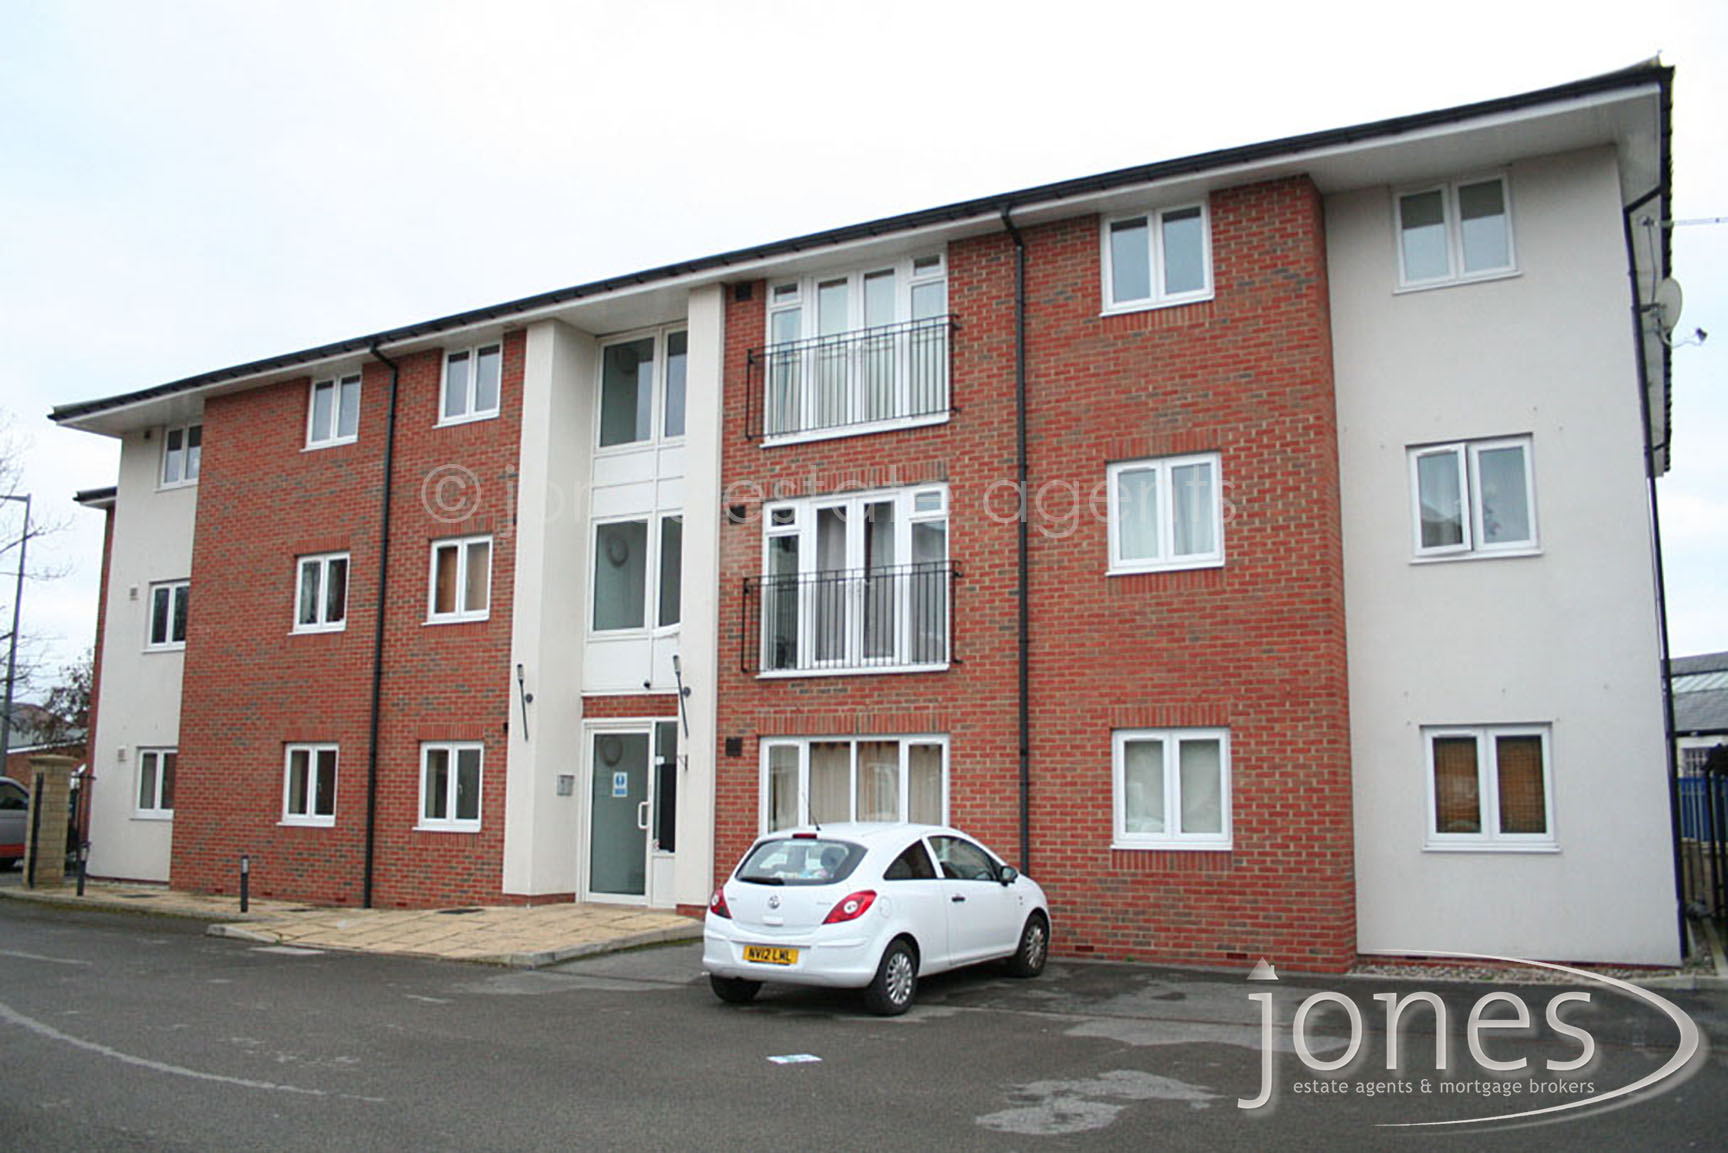 Home for Sale Let - Photo 01 York Apartments, Thornaby, Stockton on Tees,TS17 0AS